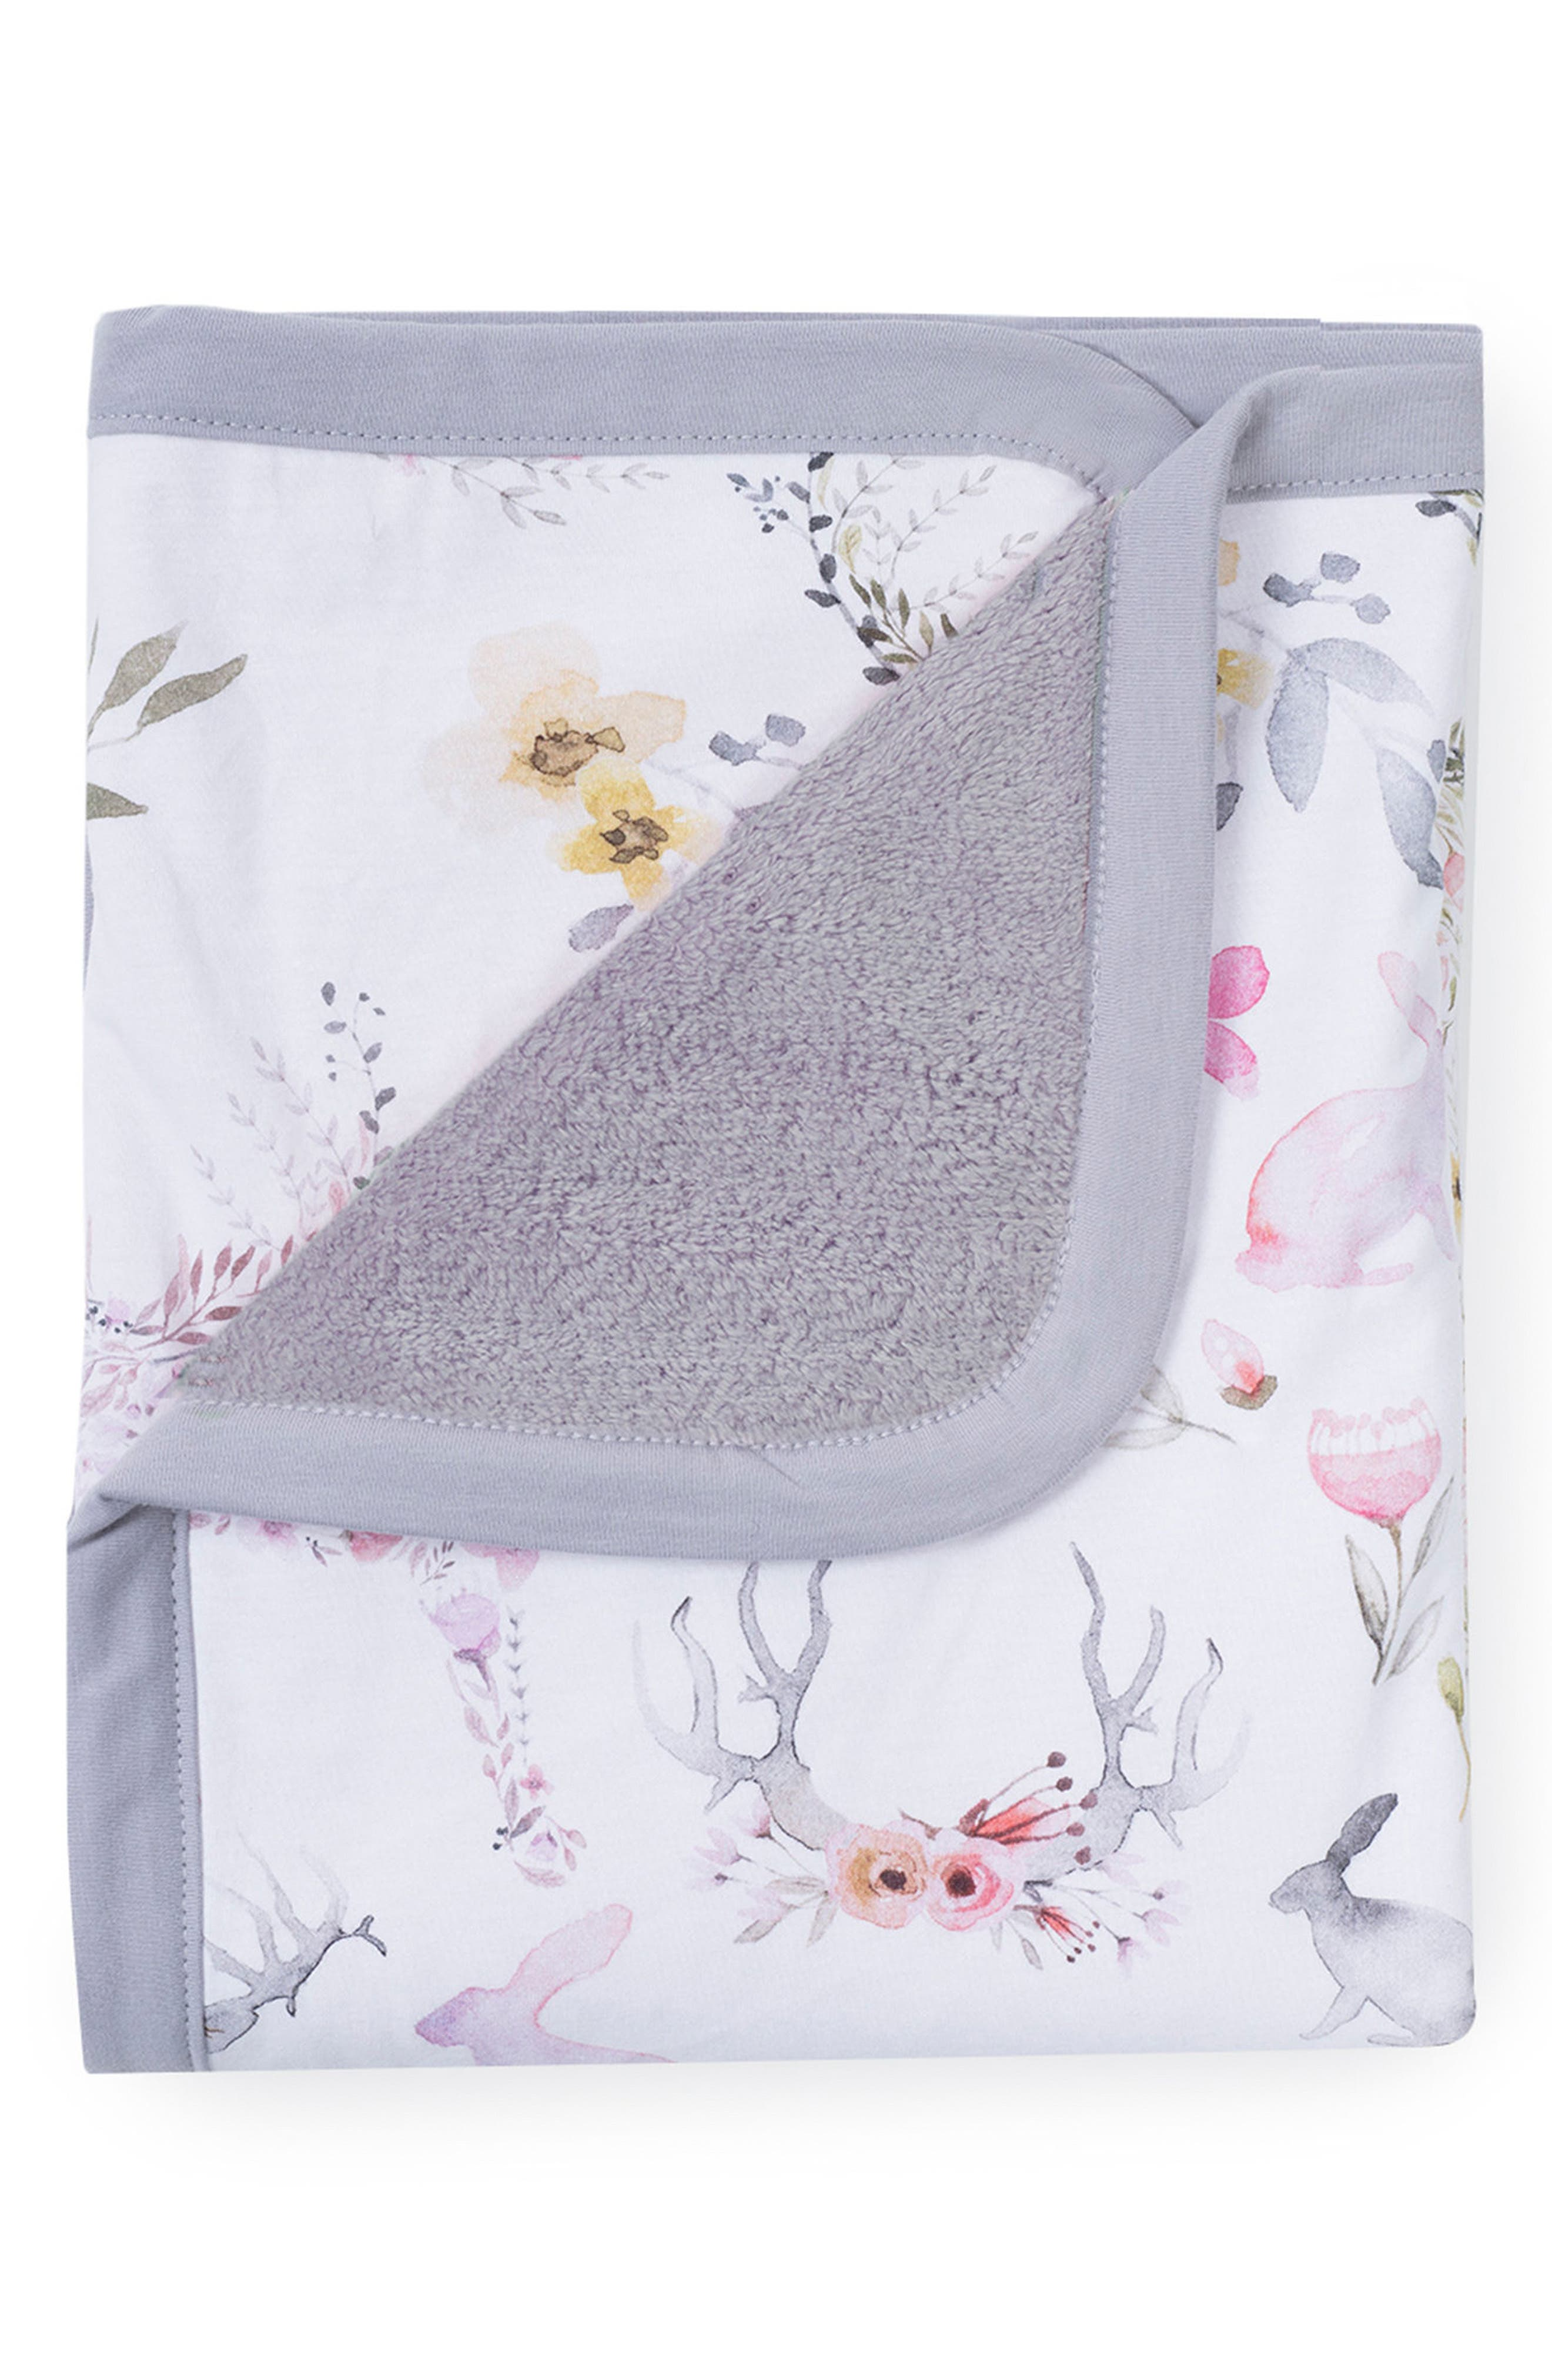 OILO Fawn Cuddle Blanket, Main, color, FAWN